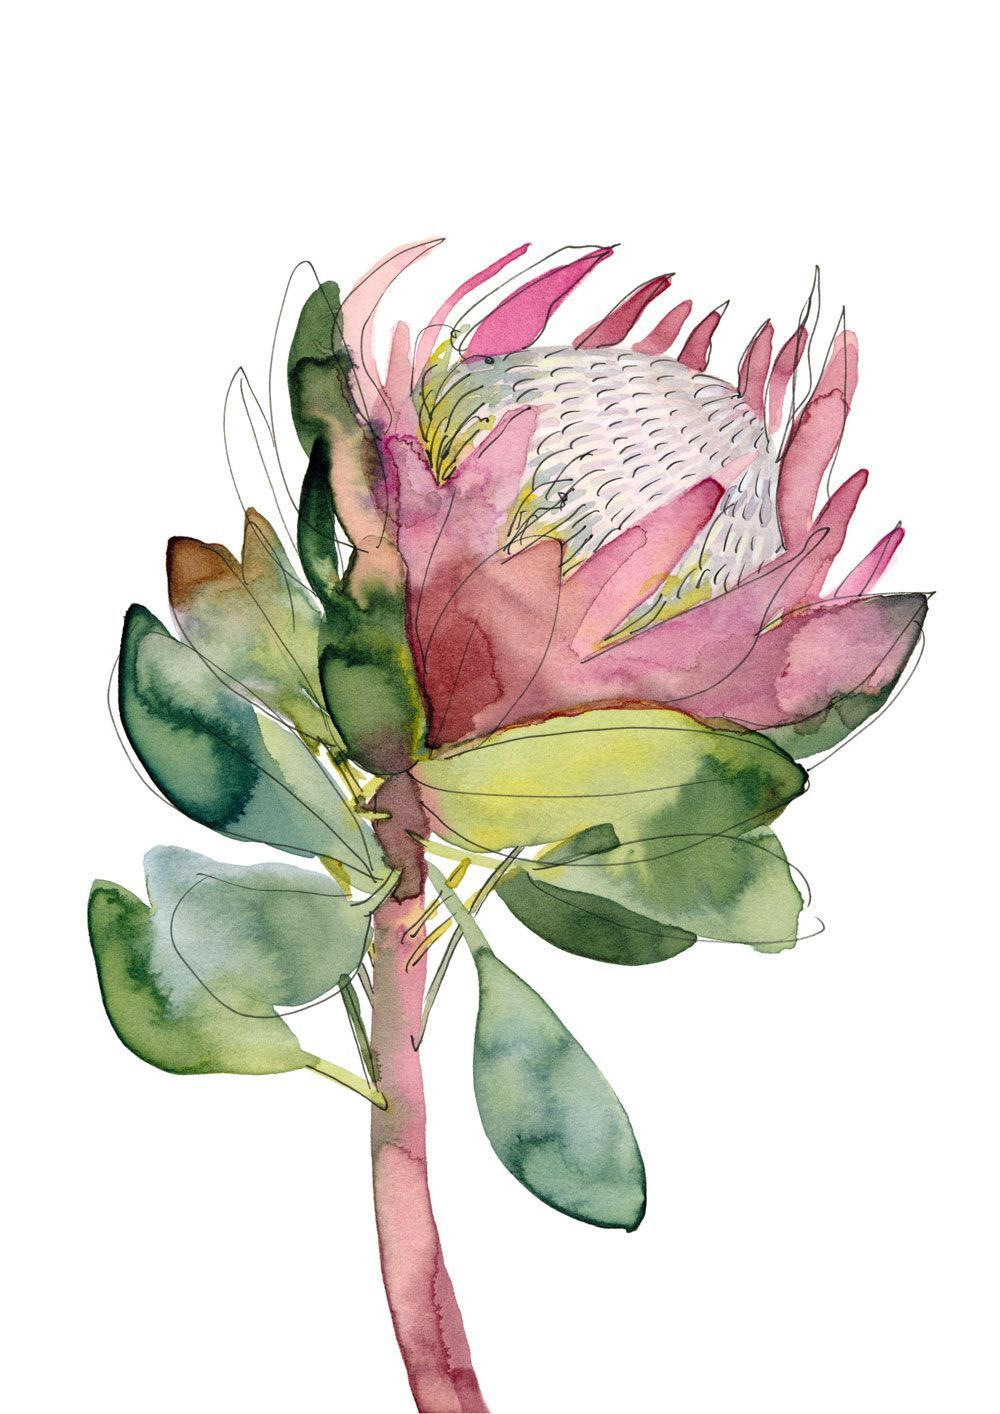 Untitled King Protea Natalie Martin Watercolorarts Protea Art Botanical Art Botanical Watercolor